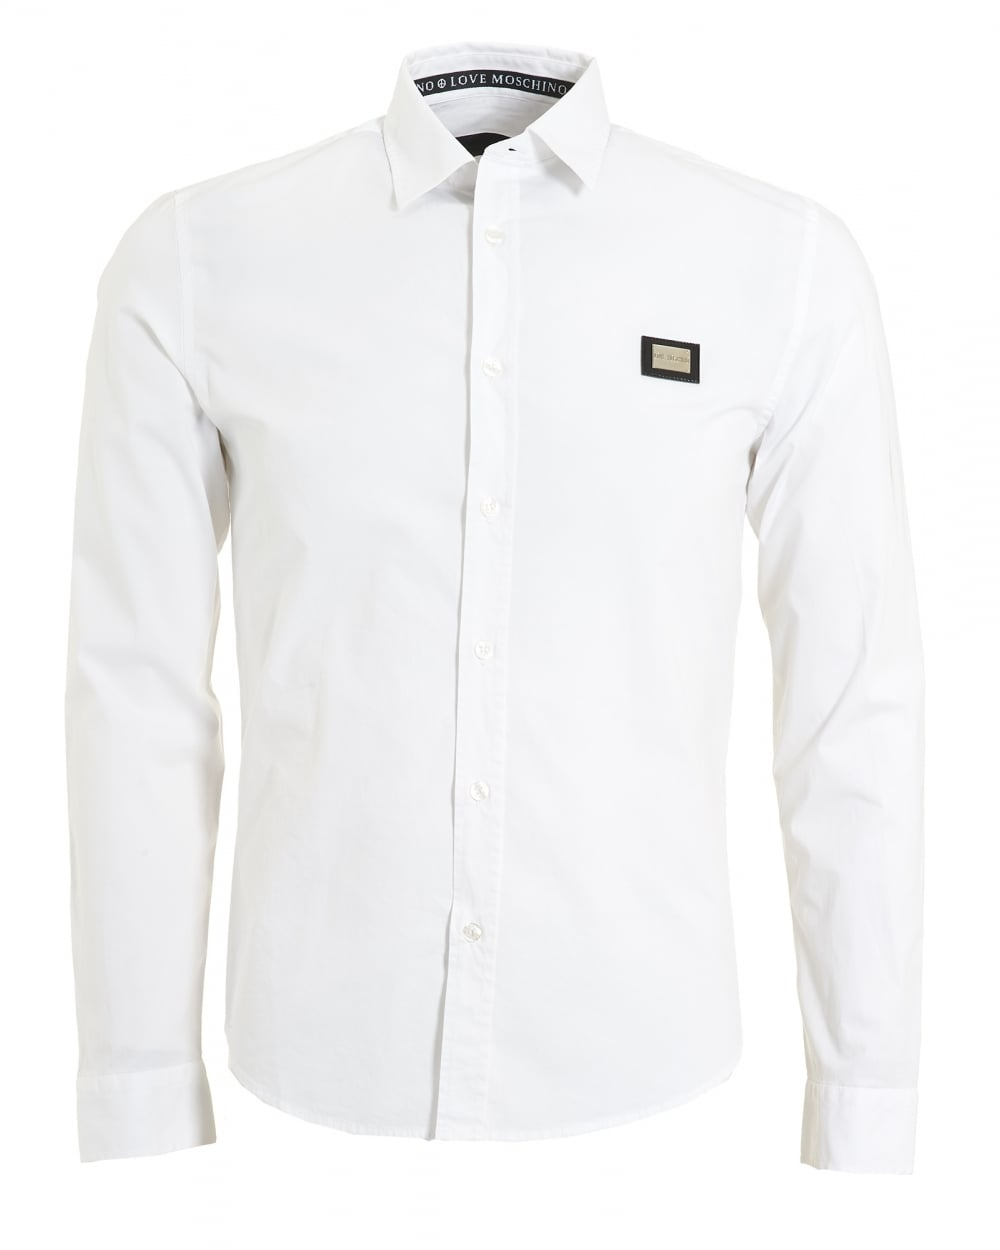 fec5948def7d Love Moschino Mens Metal Badge Logo Shirt, Poplin White Shirt